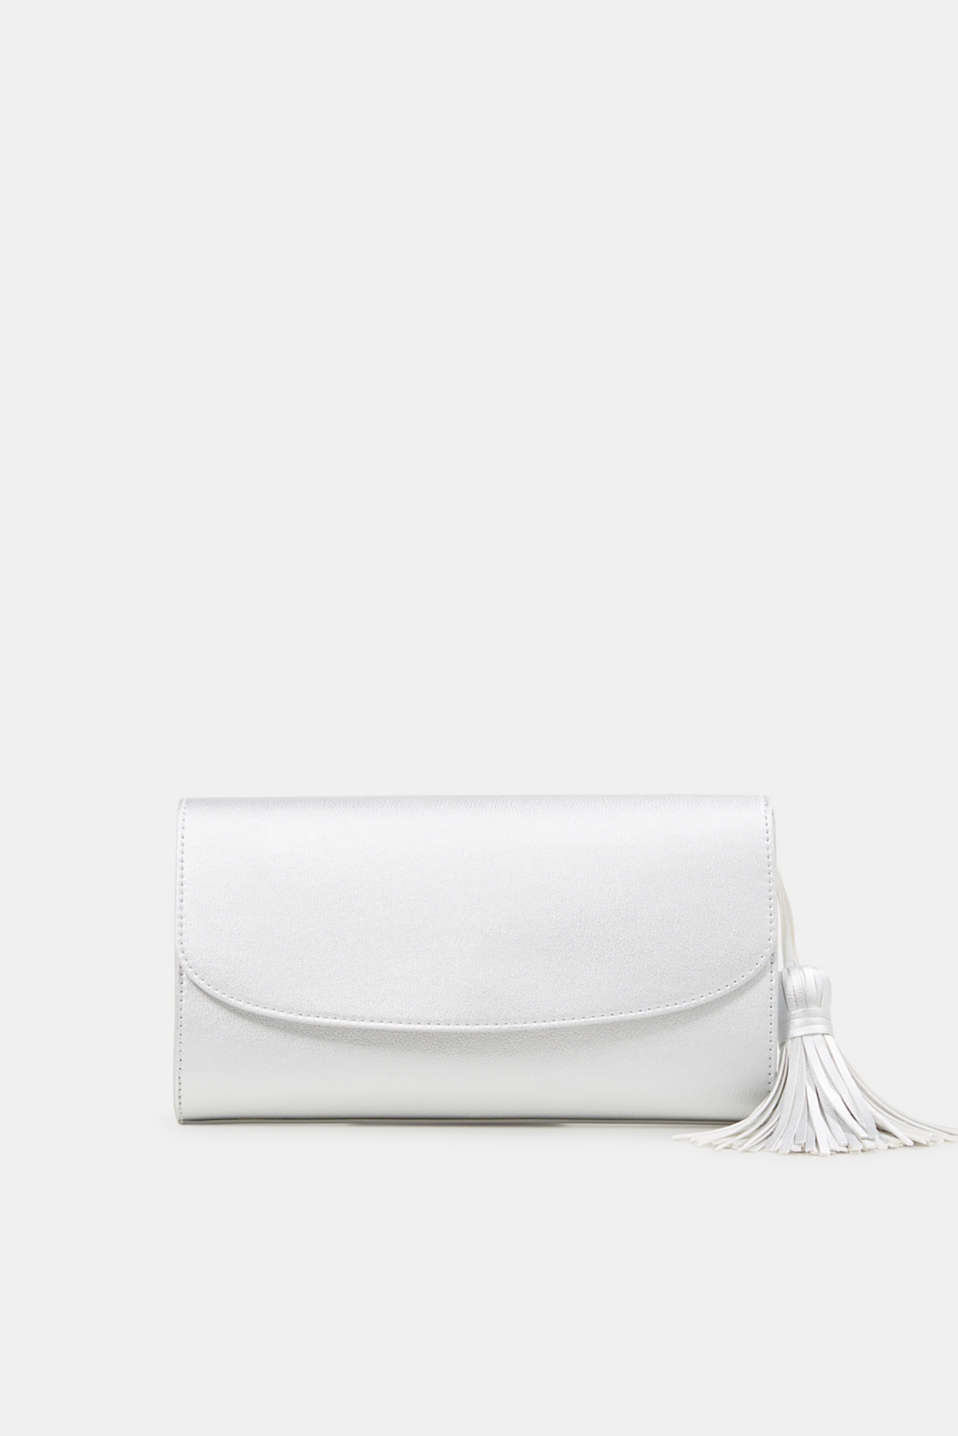 Esprit - Faux leather clutch, vegan